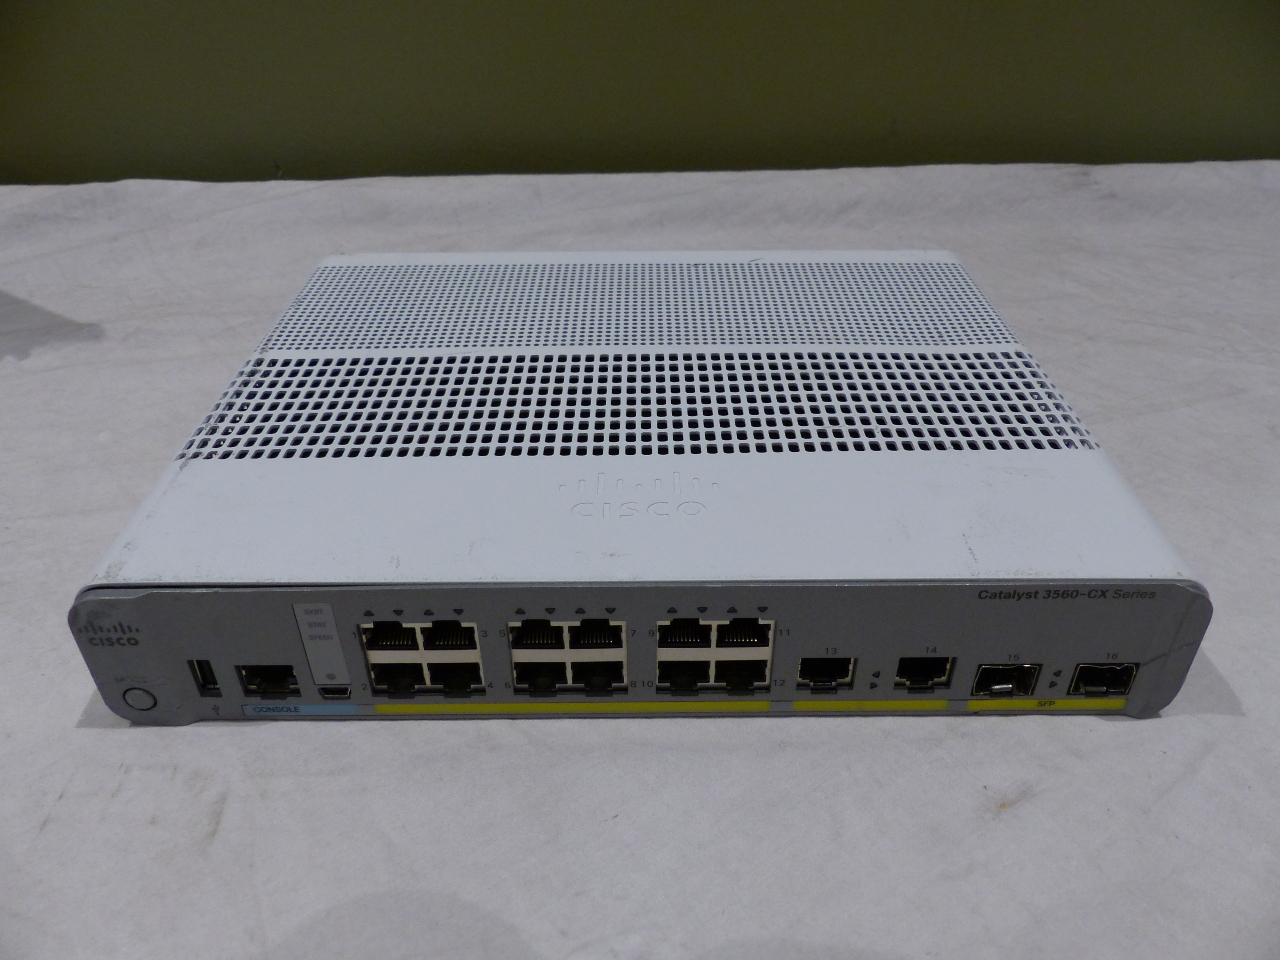 CISCO 3560 12-PORT SWITCH WS-C3560CX-12TC-S